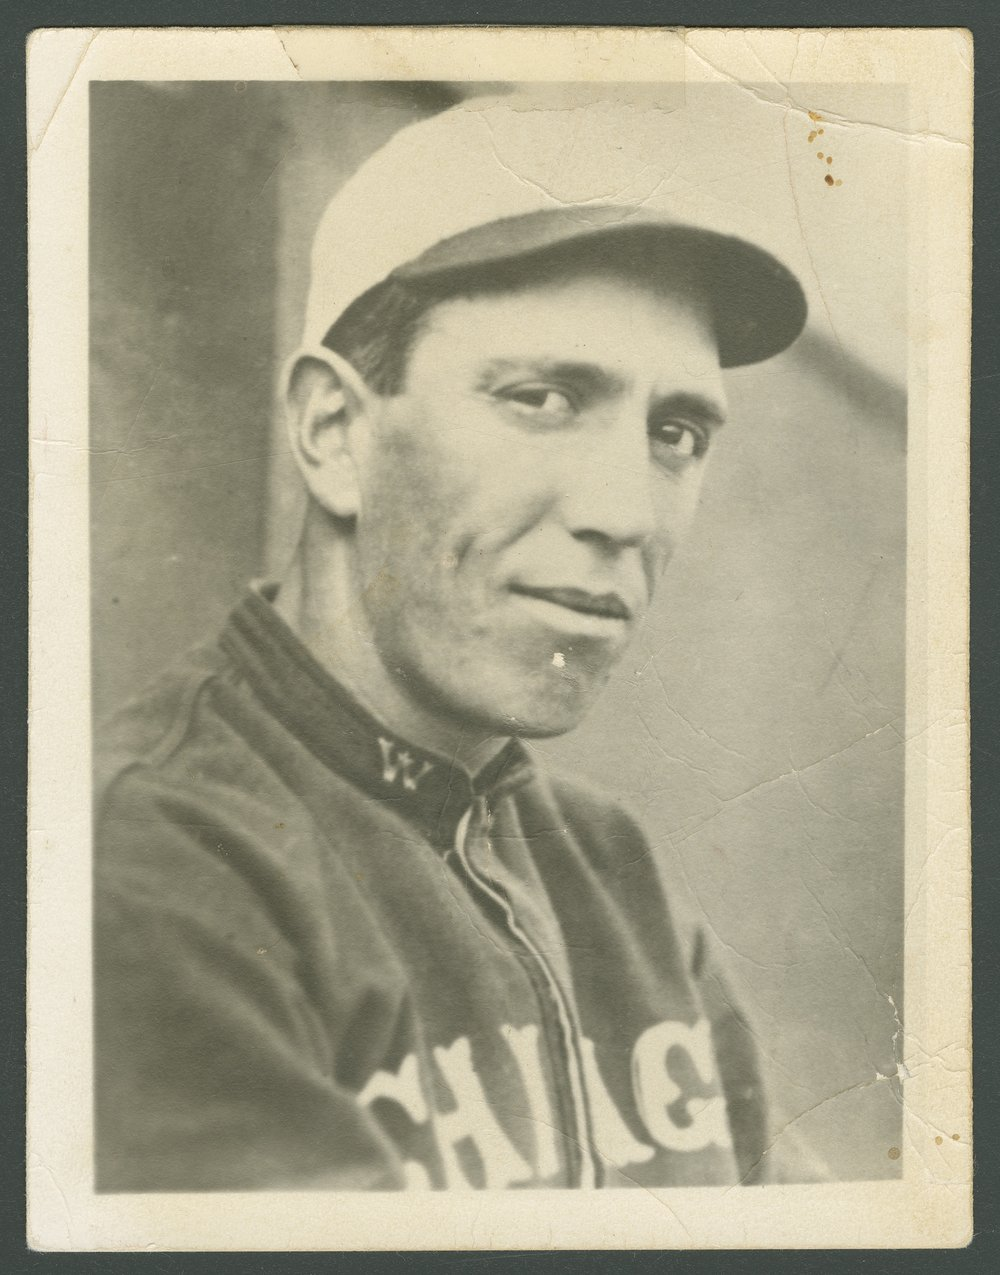 Wiley Taylor of the Chicago White Sox - 1